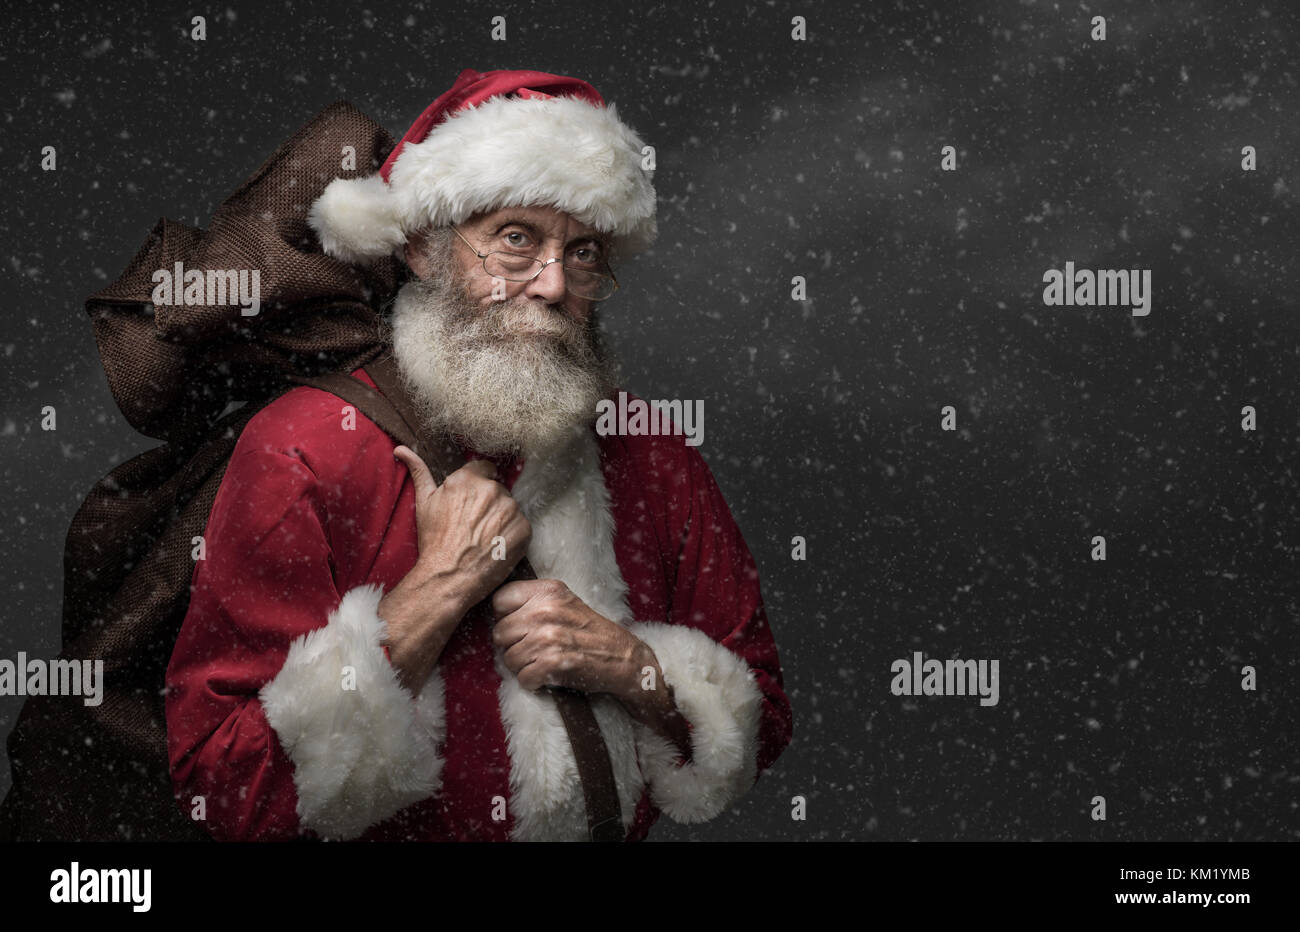 Smiling Santa Claus carrying a sack with gifts on Christmas Eve - Stock Image